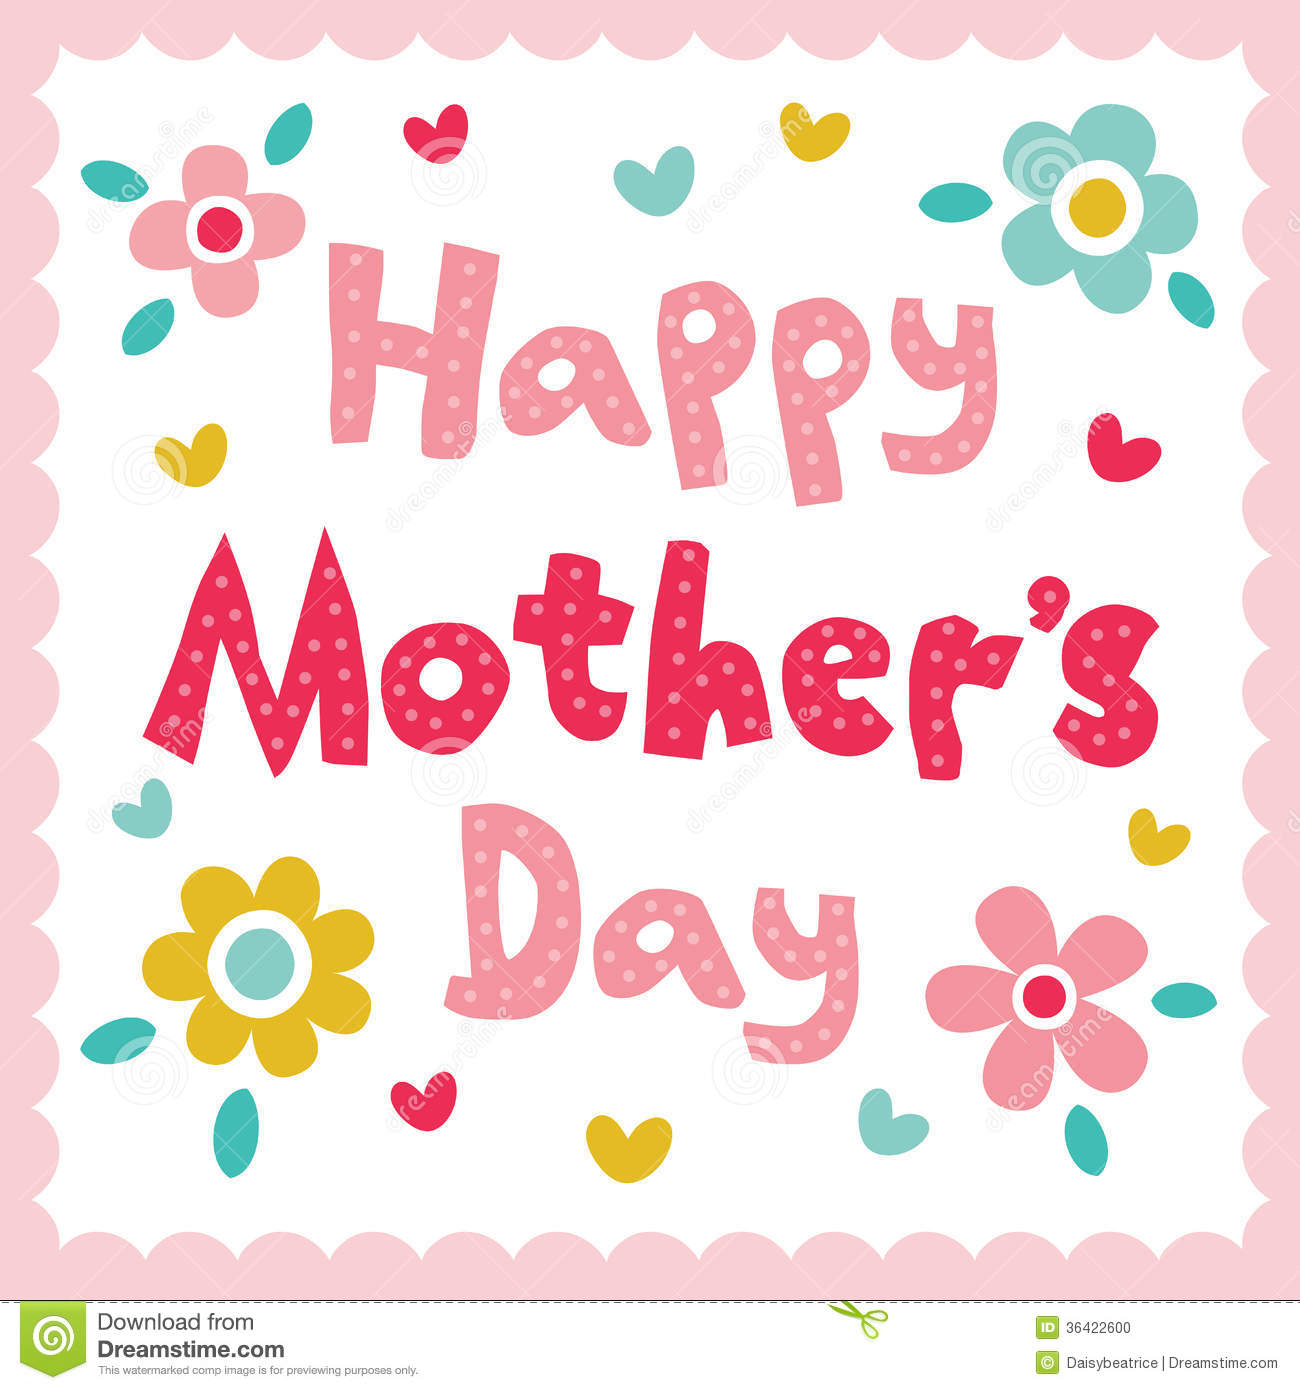 Happy mothers day card stock vector illustration of dots 36422600 happy mothers day card kristyandbryce Image collections